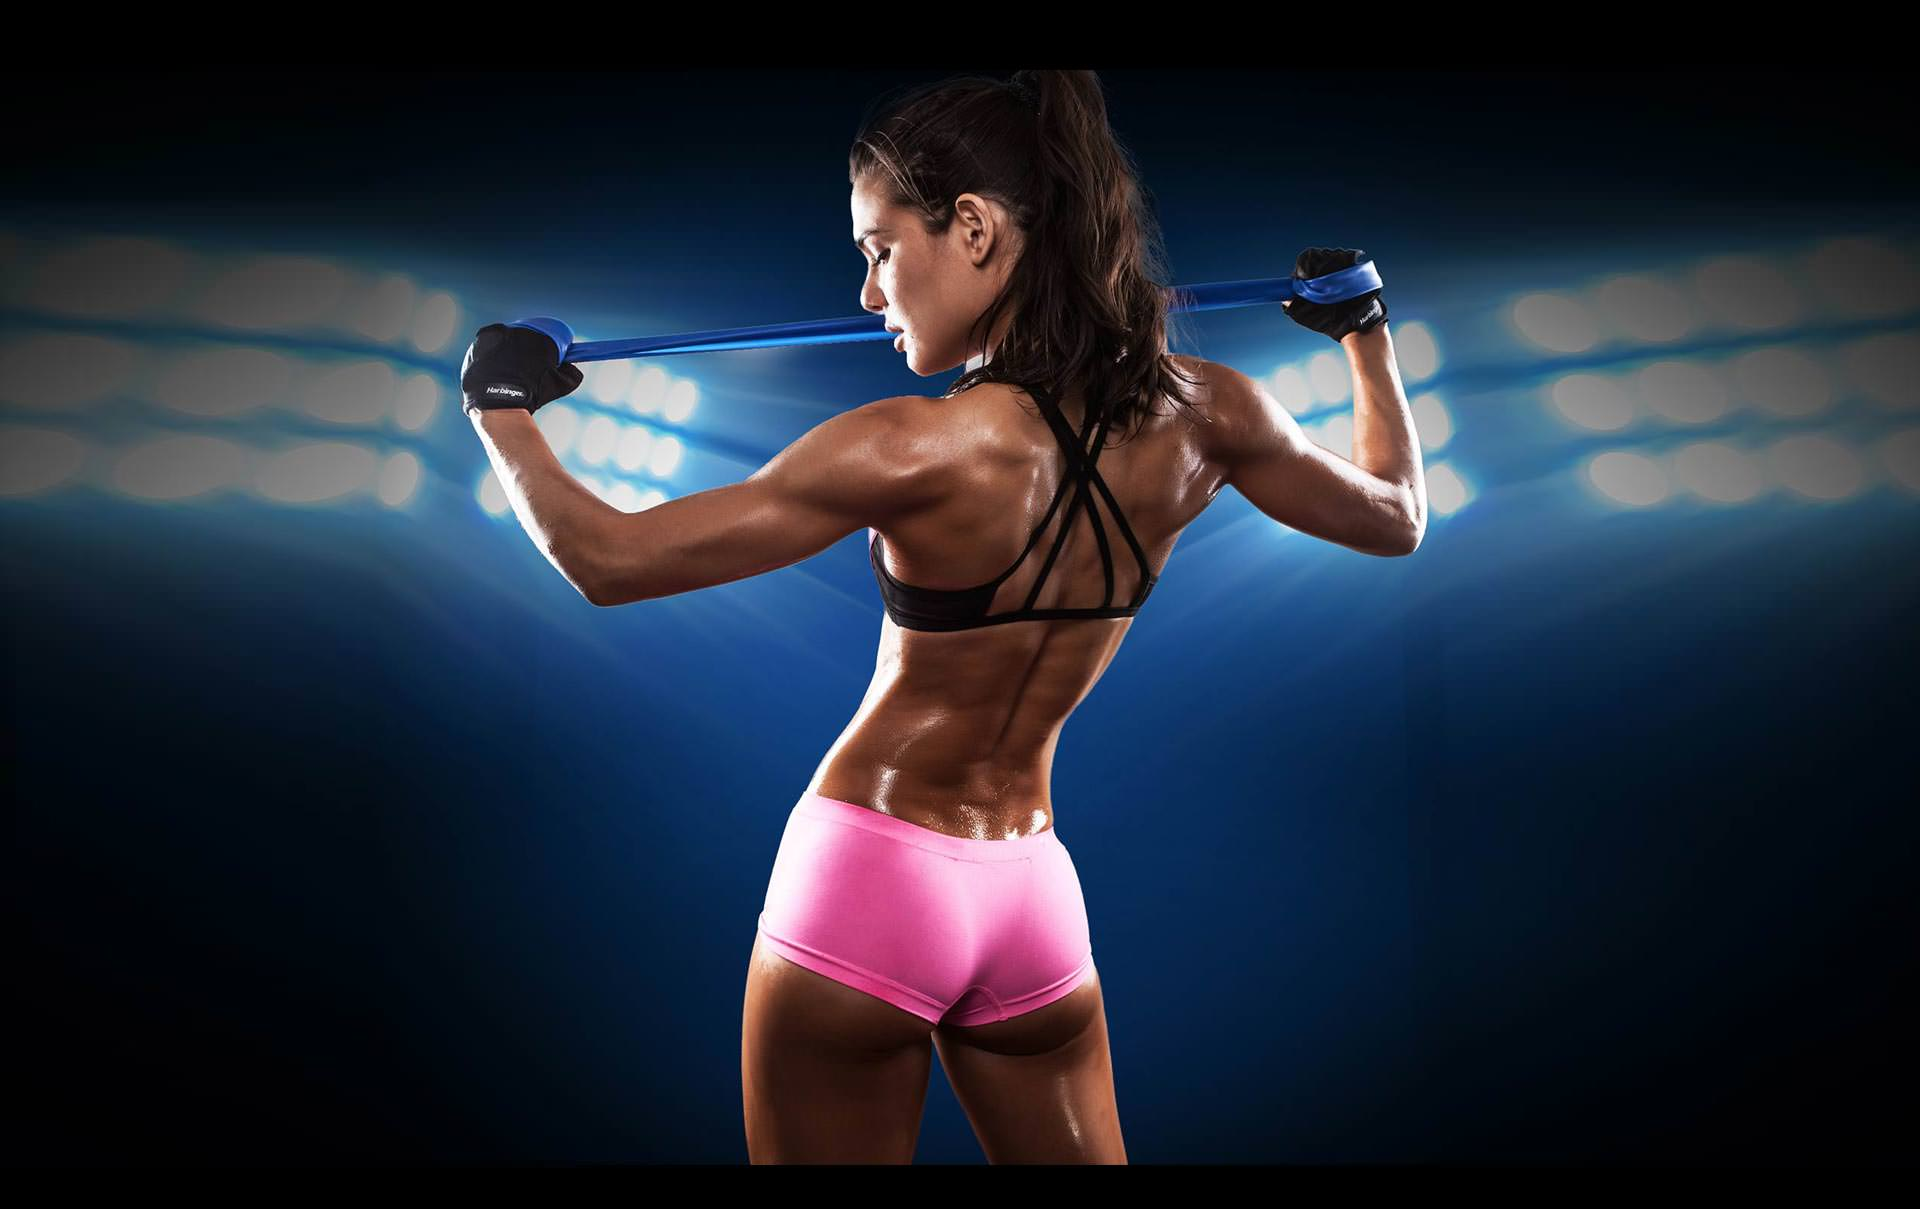 Why Masteron Enanthate called Drostanolone Enanthate?